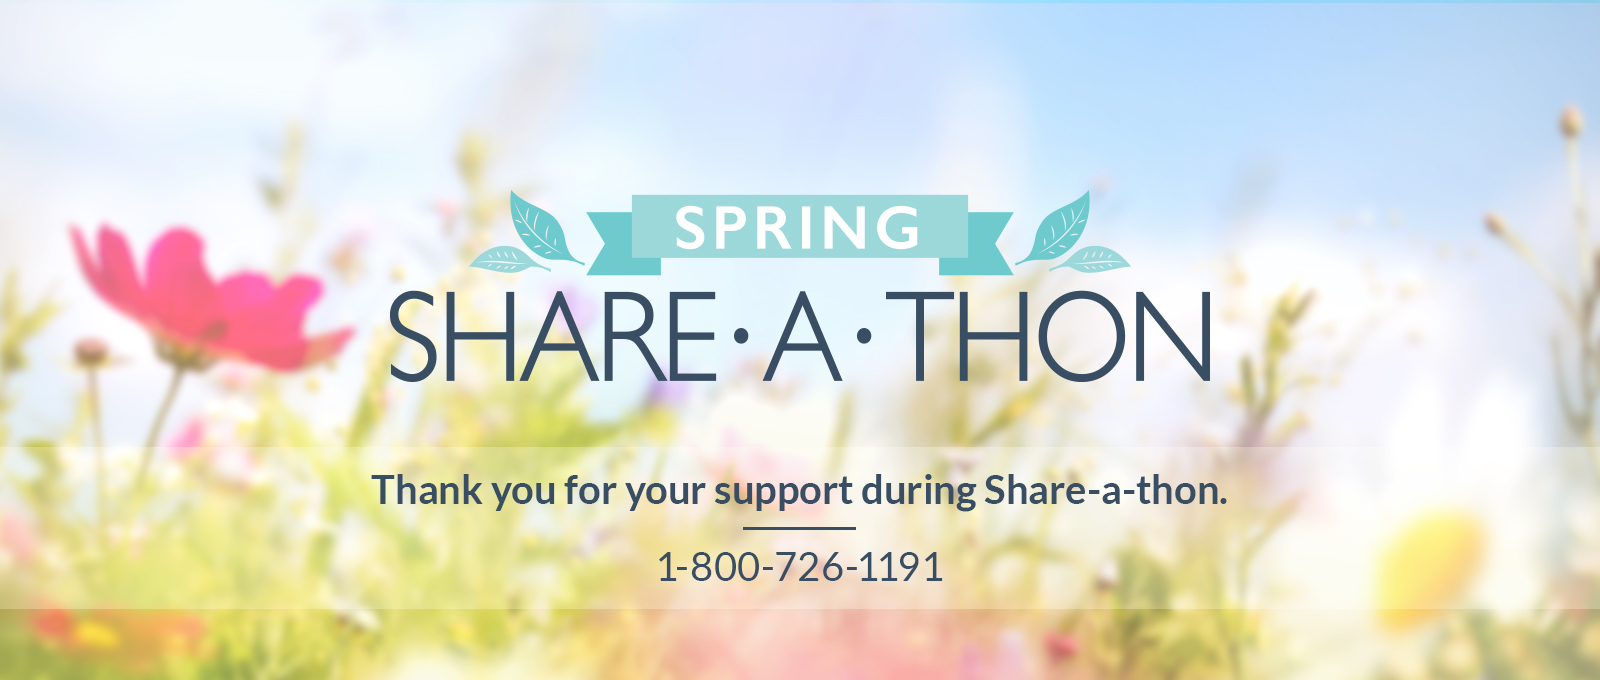 Thank you for your support during Share-a-thon